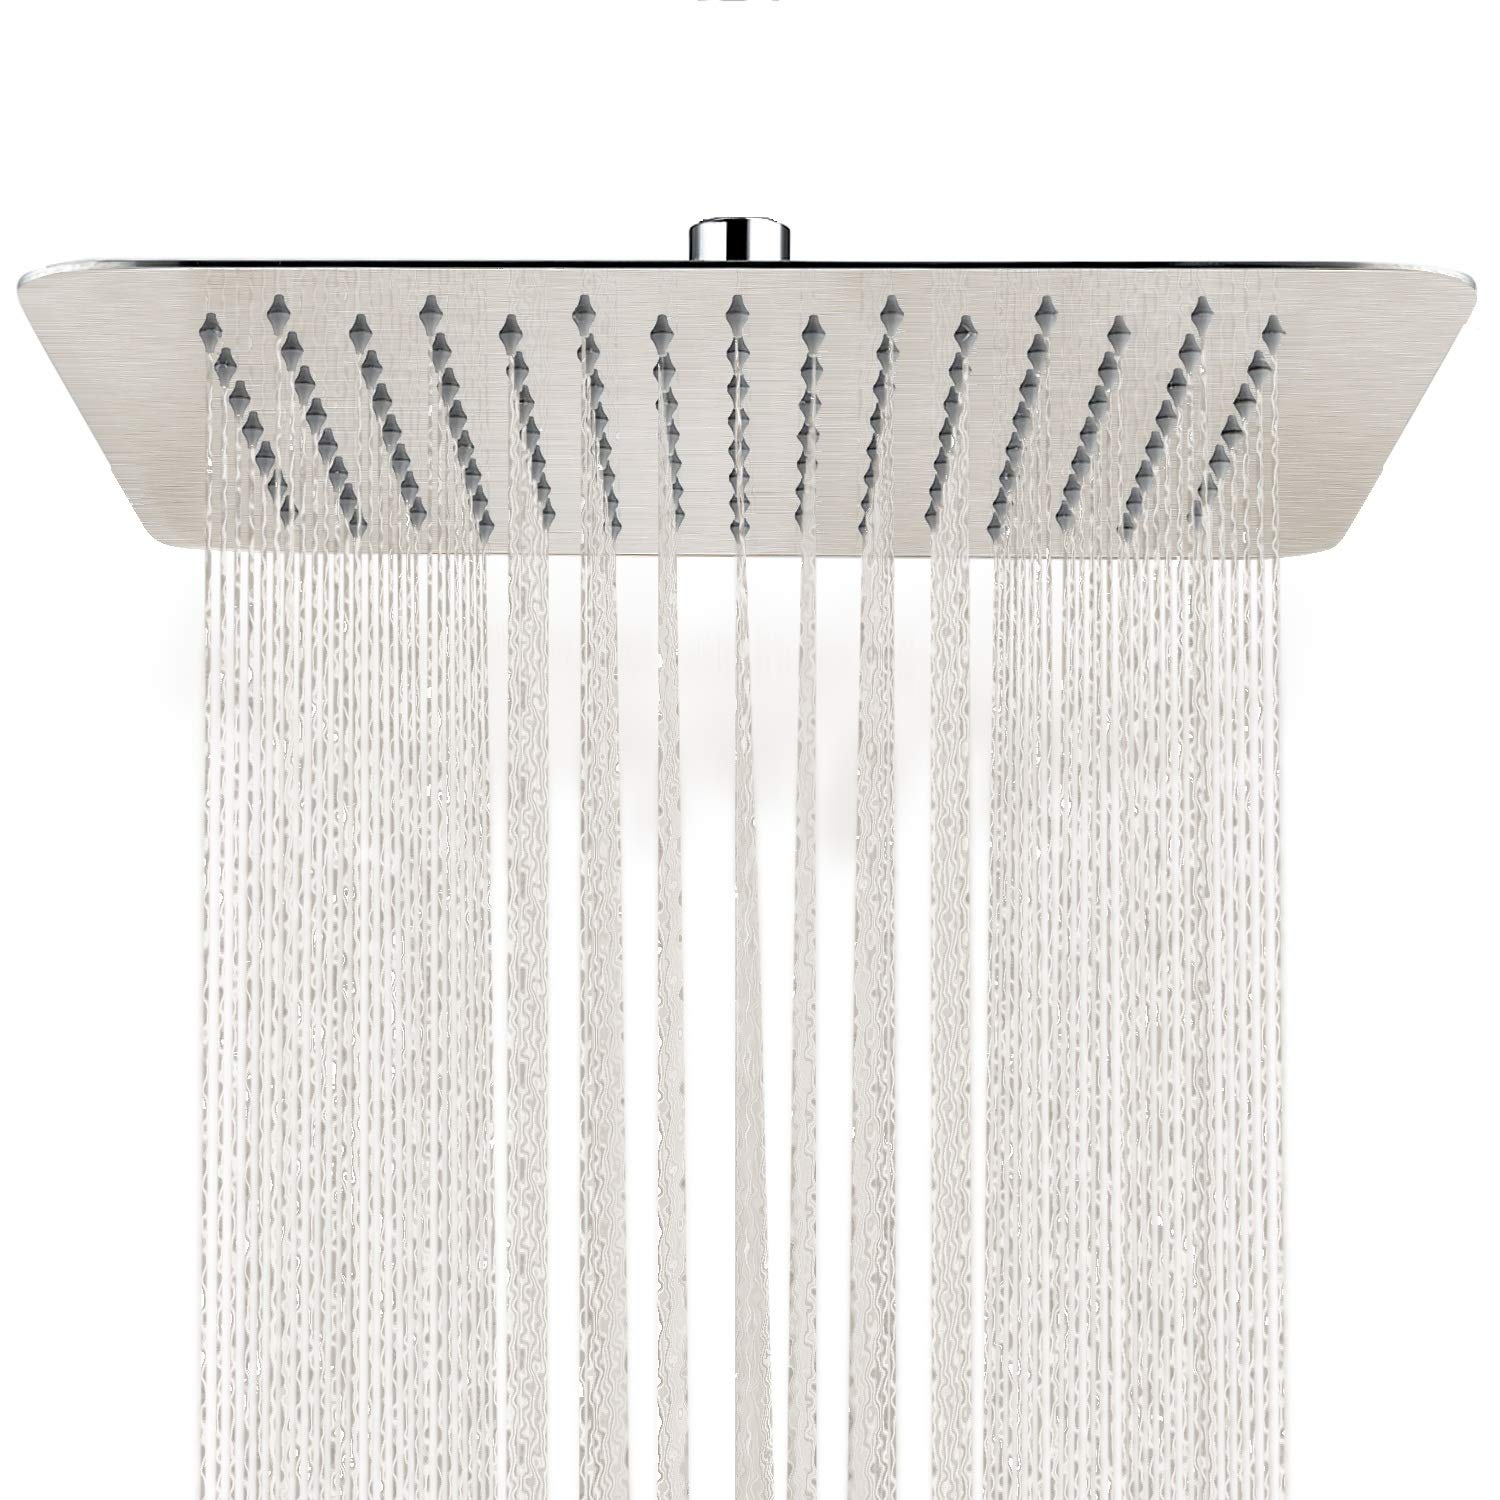 SR SUN RISE 12 Inch Rain Shower Head Brushed Nickel 304 Stainless Steel High Pressure Rainfall Showerhead Ultra Thin Water Saving